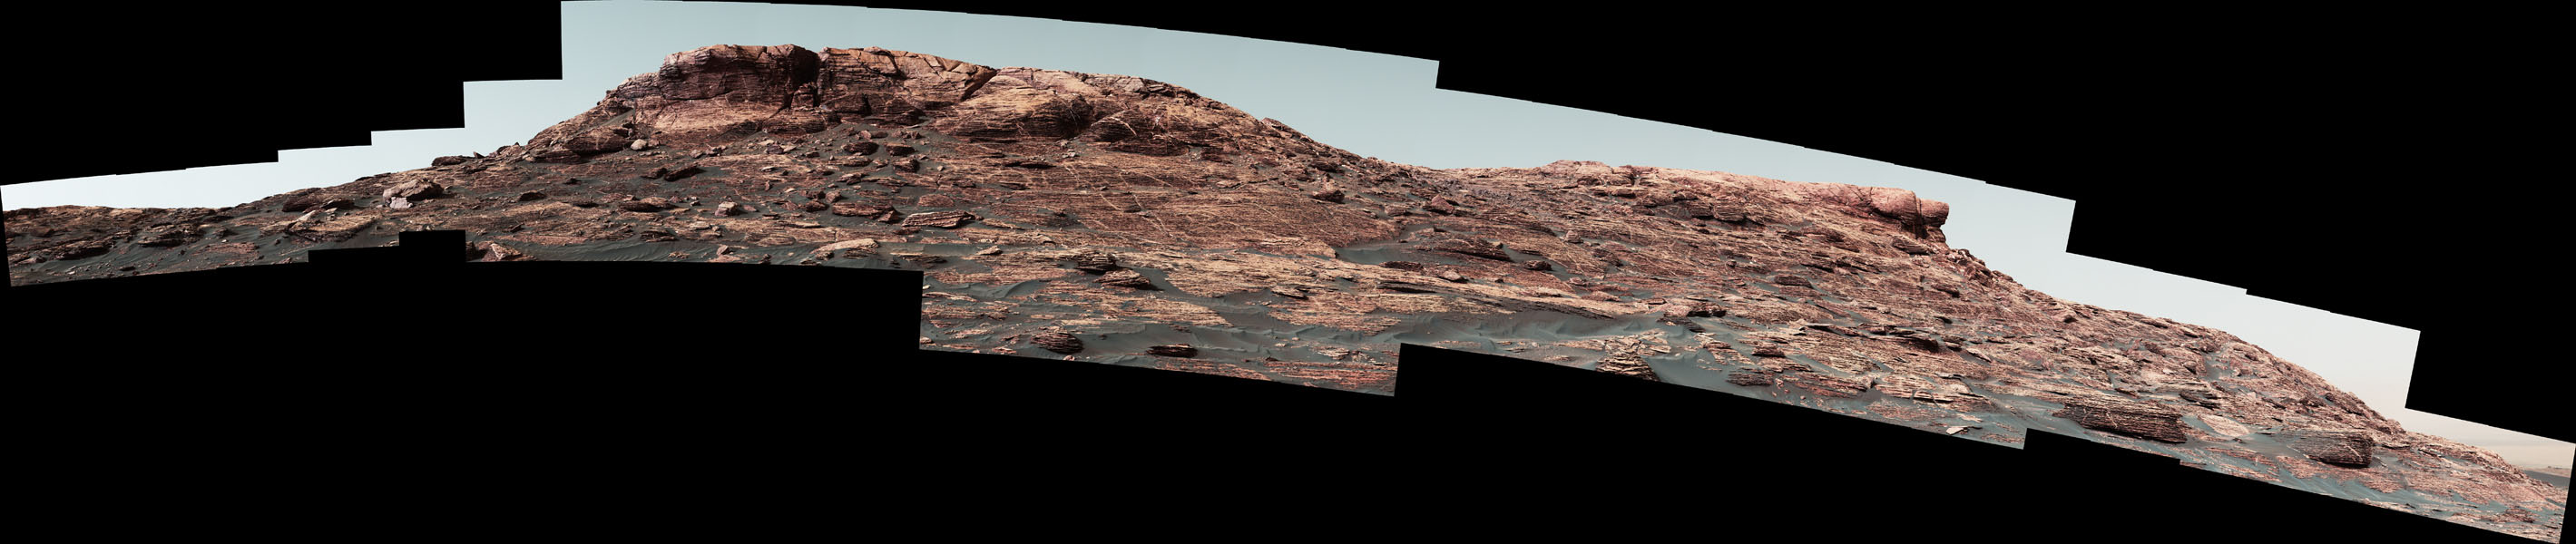 Researchers used the Mastcam on NASA's Curiosity Mars rover to gain this detailed view of layers in 'Vera Rubin Ridge' from just below the ridge.